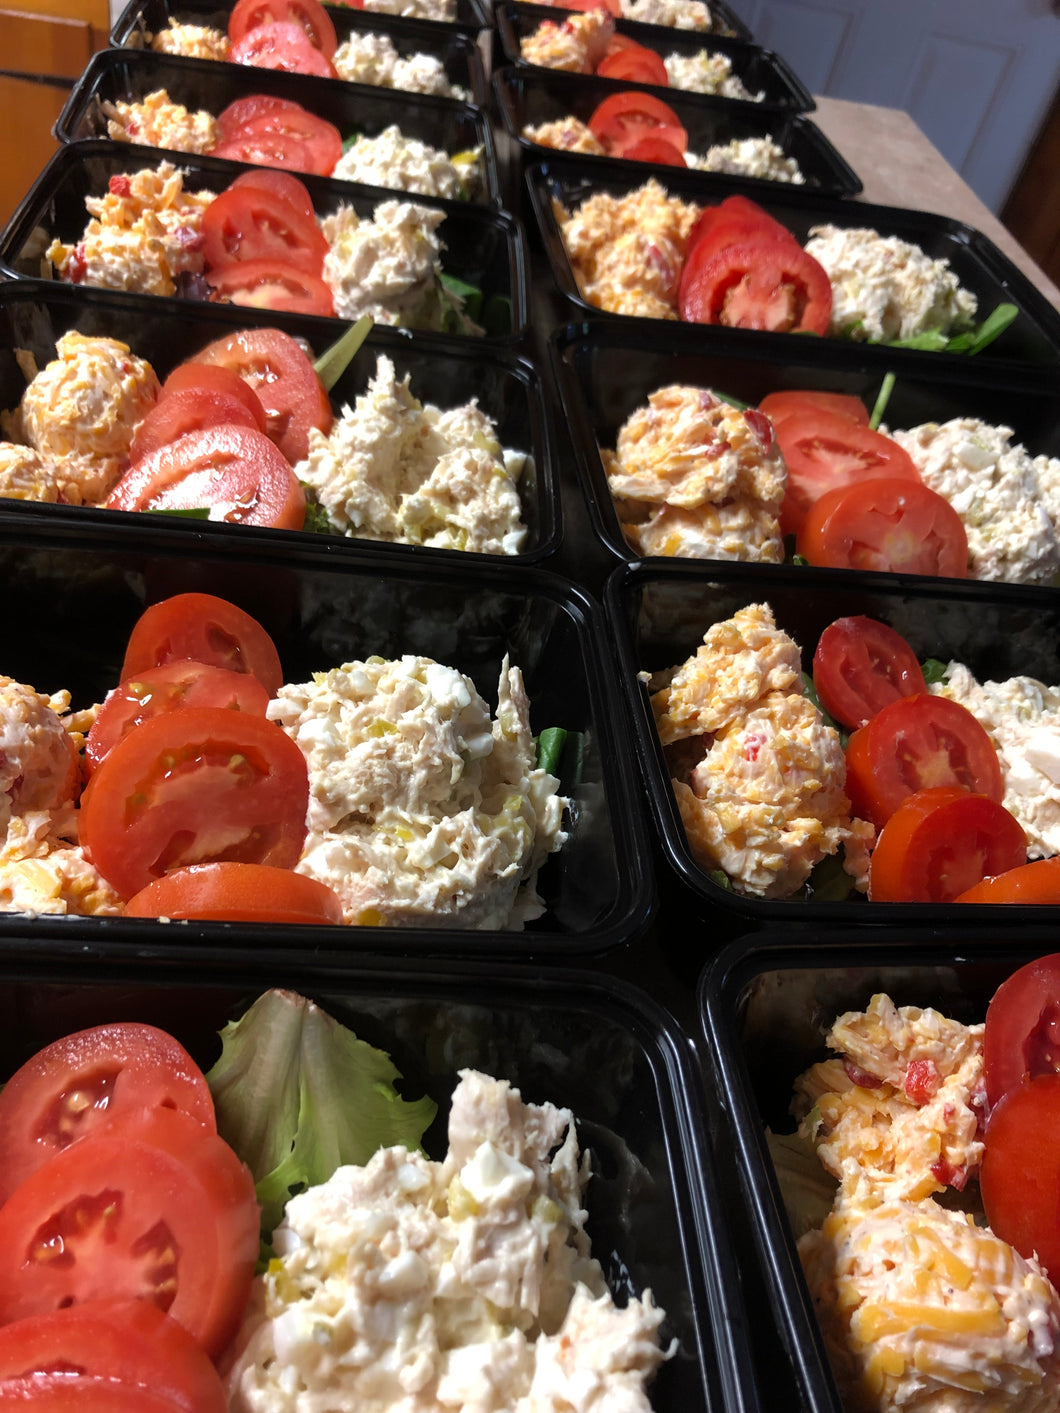 Chicken Salad, Pimento Cheese (combo or by the pound)